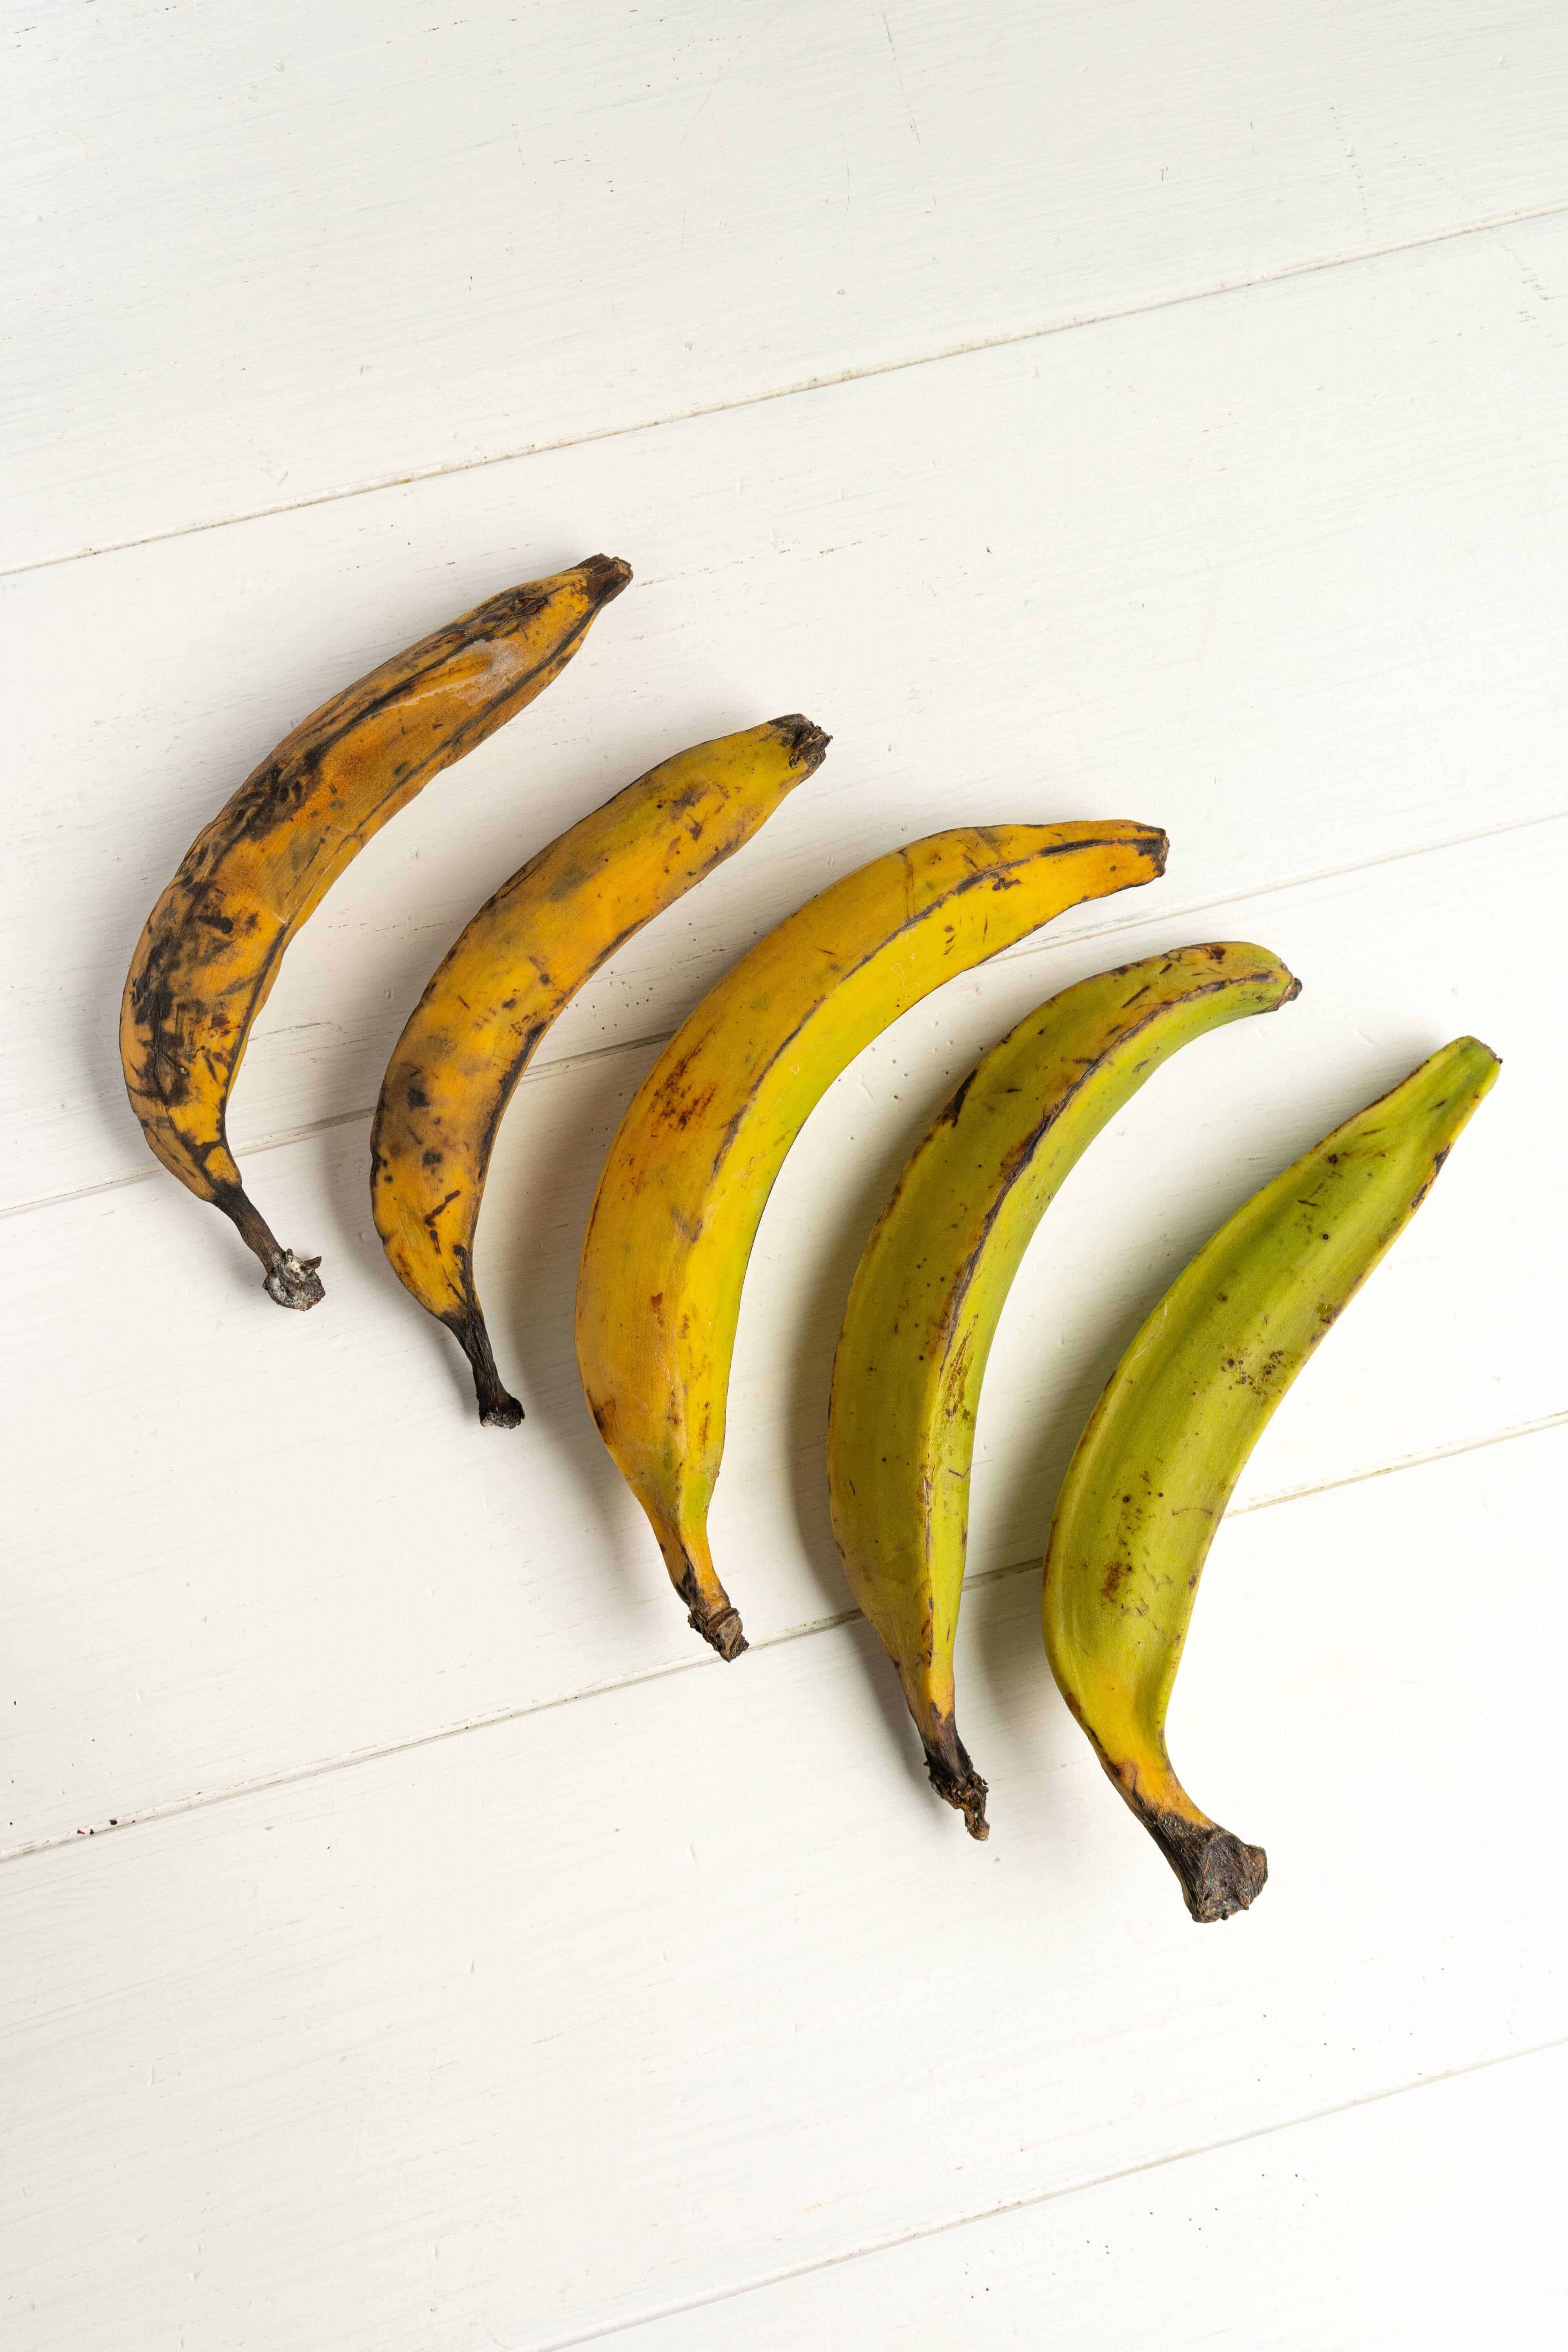 A bunch of plantains.